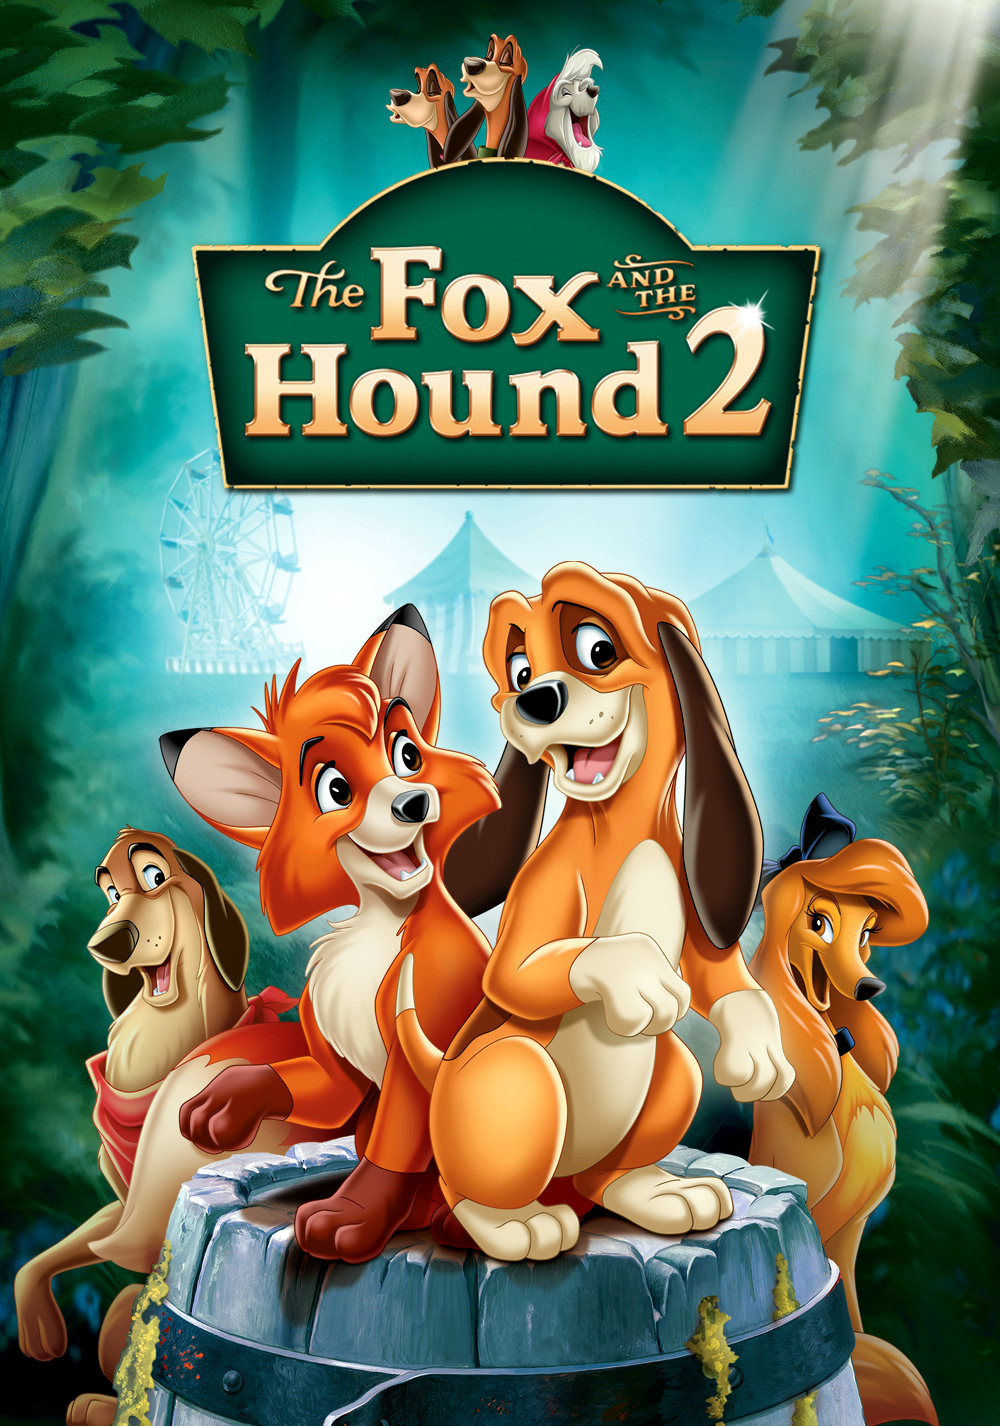 The Fox and the Hound 2 | Disney Wiki | FANDOM powered by ...